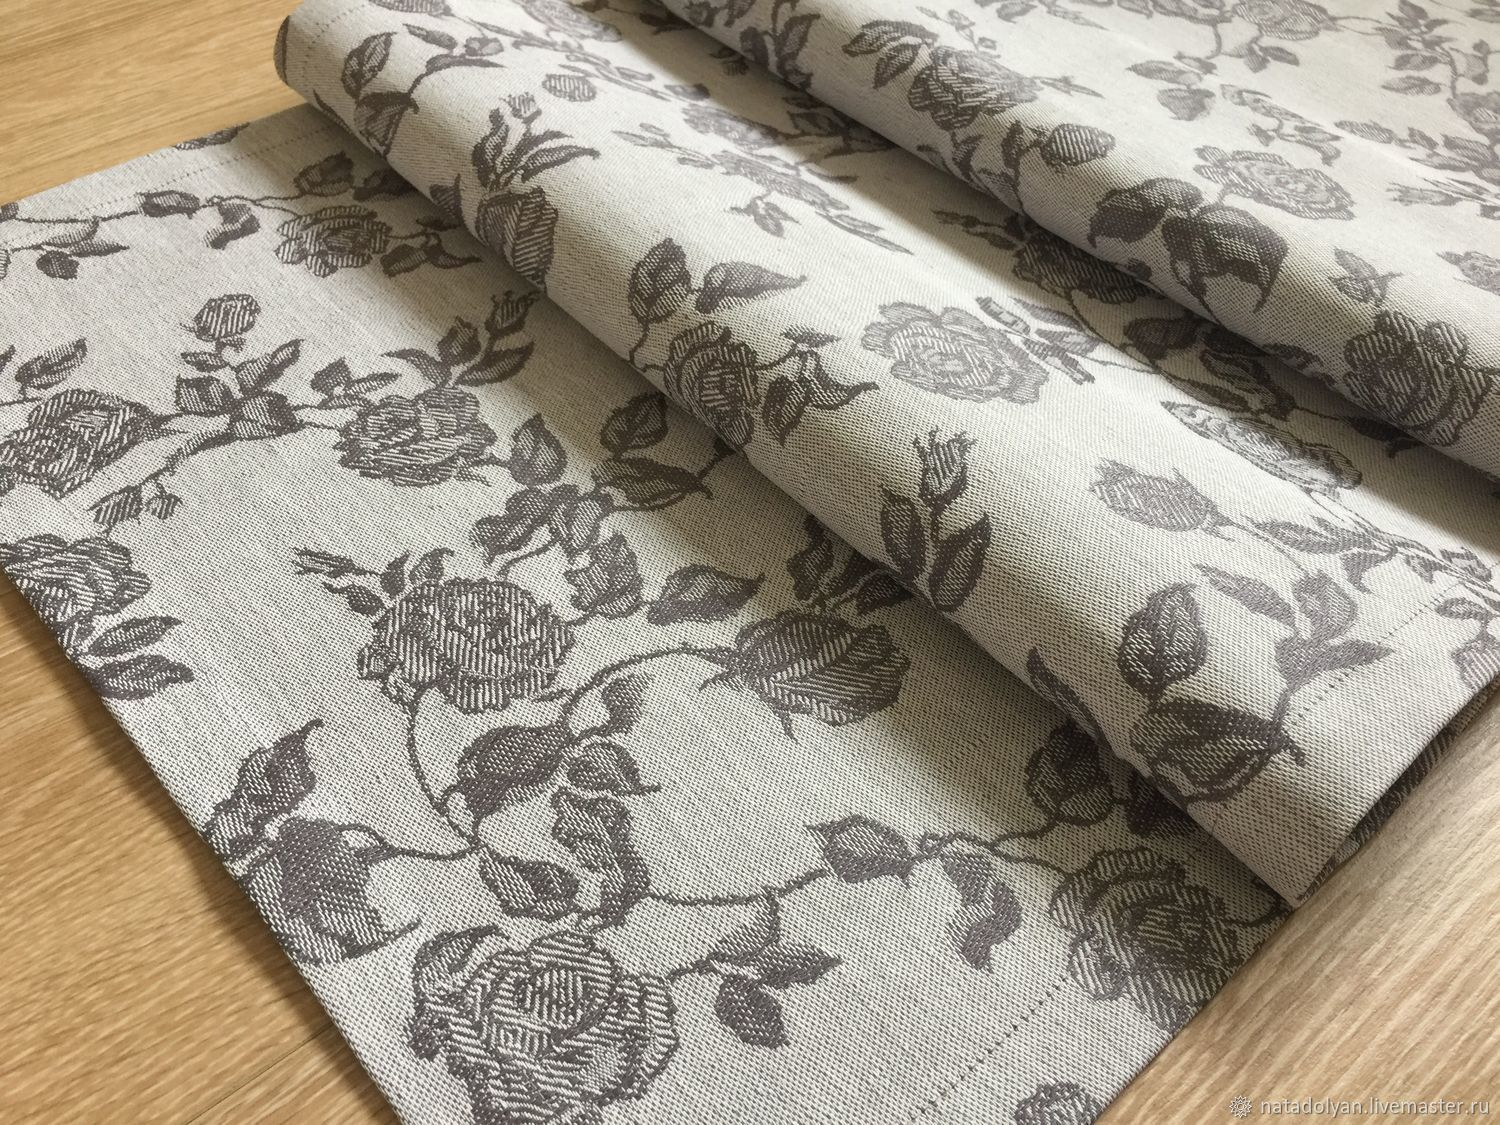 Track linen 'Roses on grey' in stock, Tablecloths, Ivanovo,  Фото №1